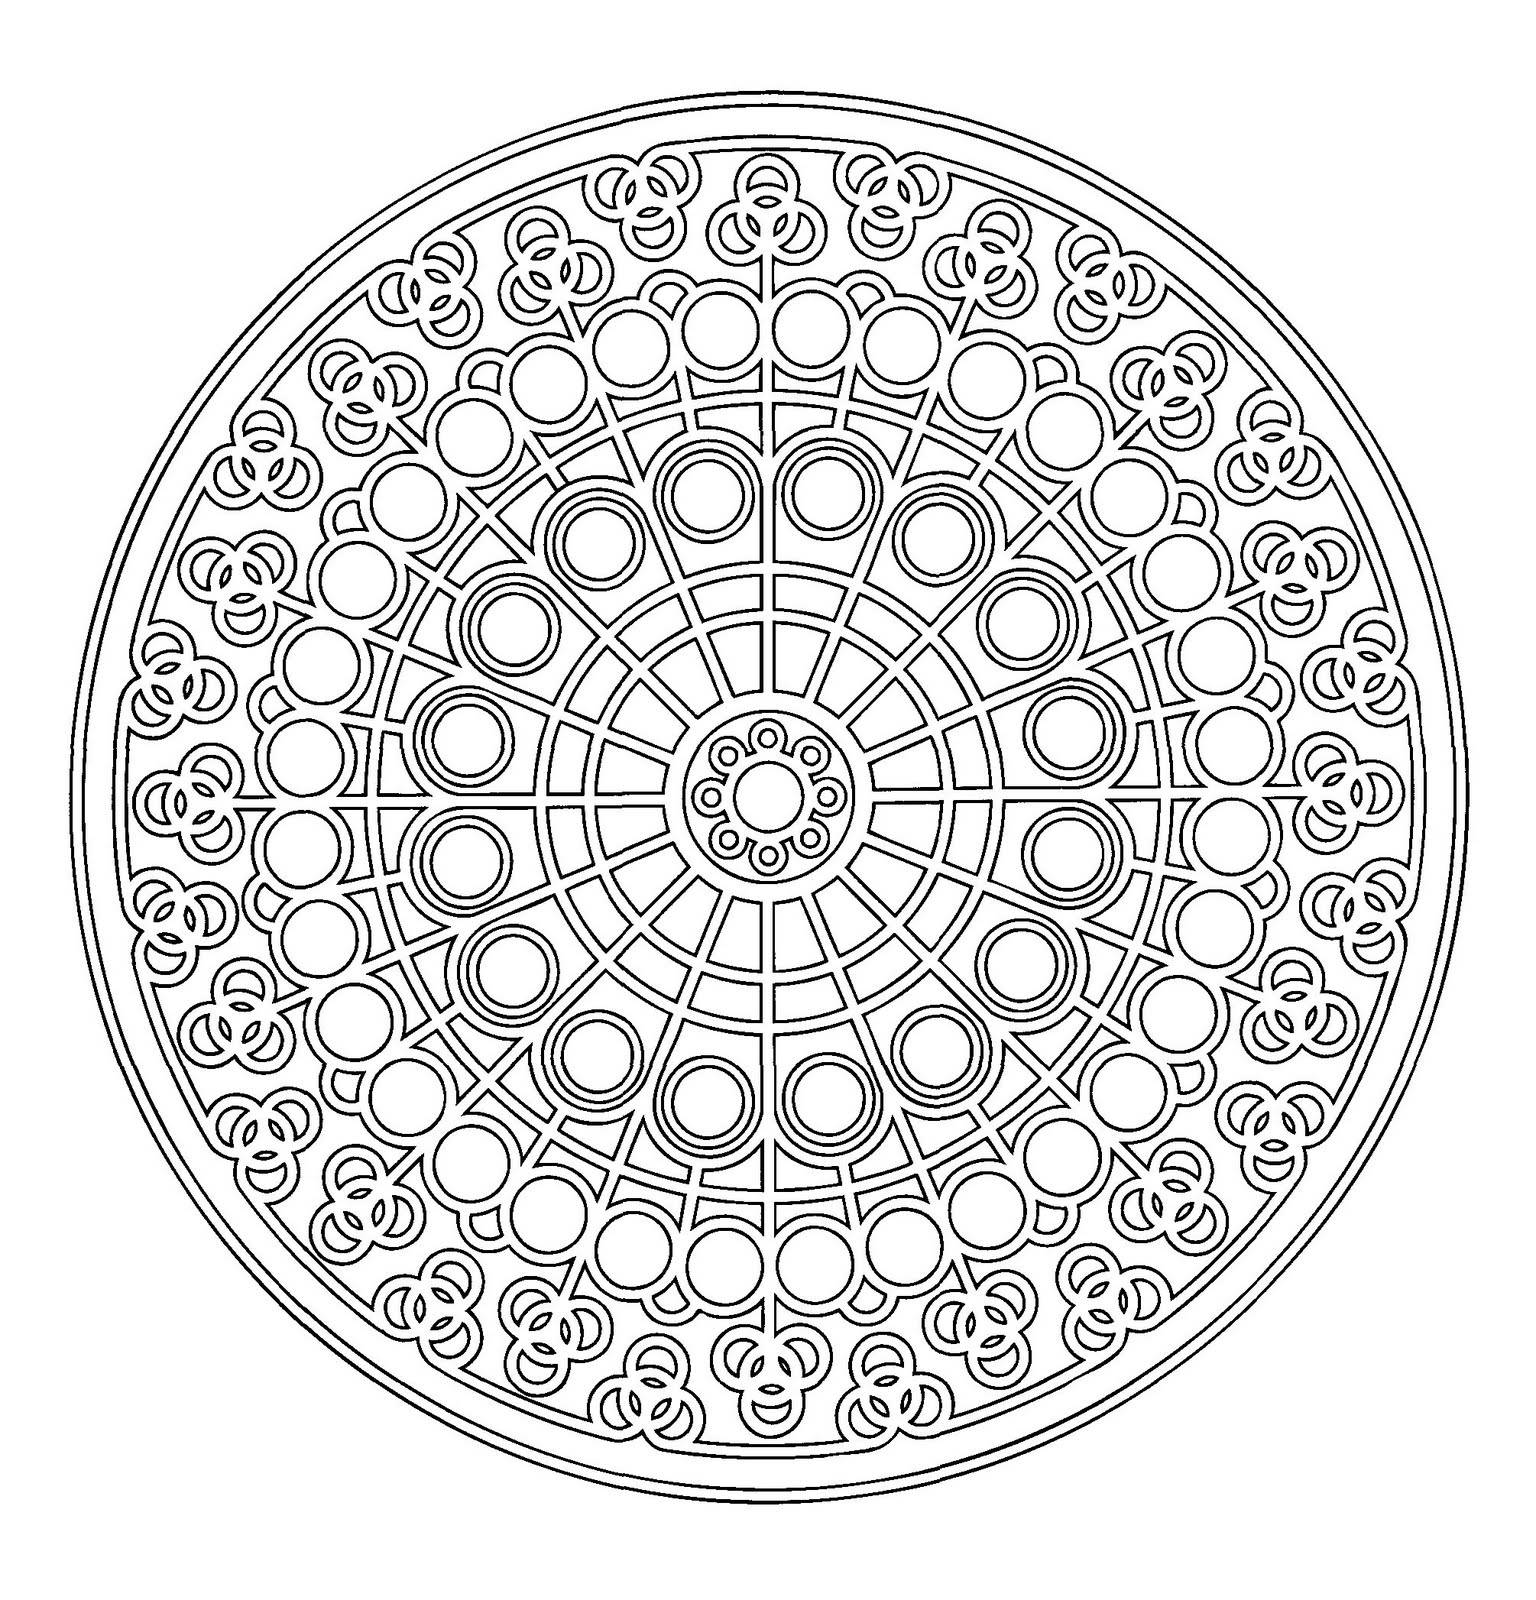 mazuras mandala coloring pages - photo#6